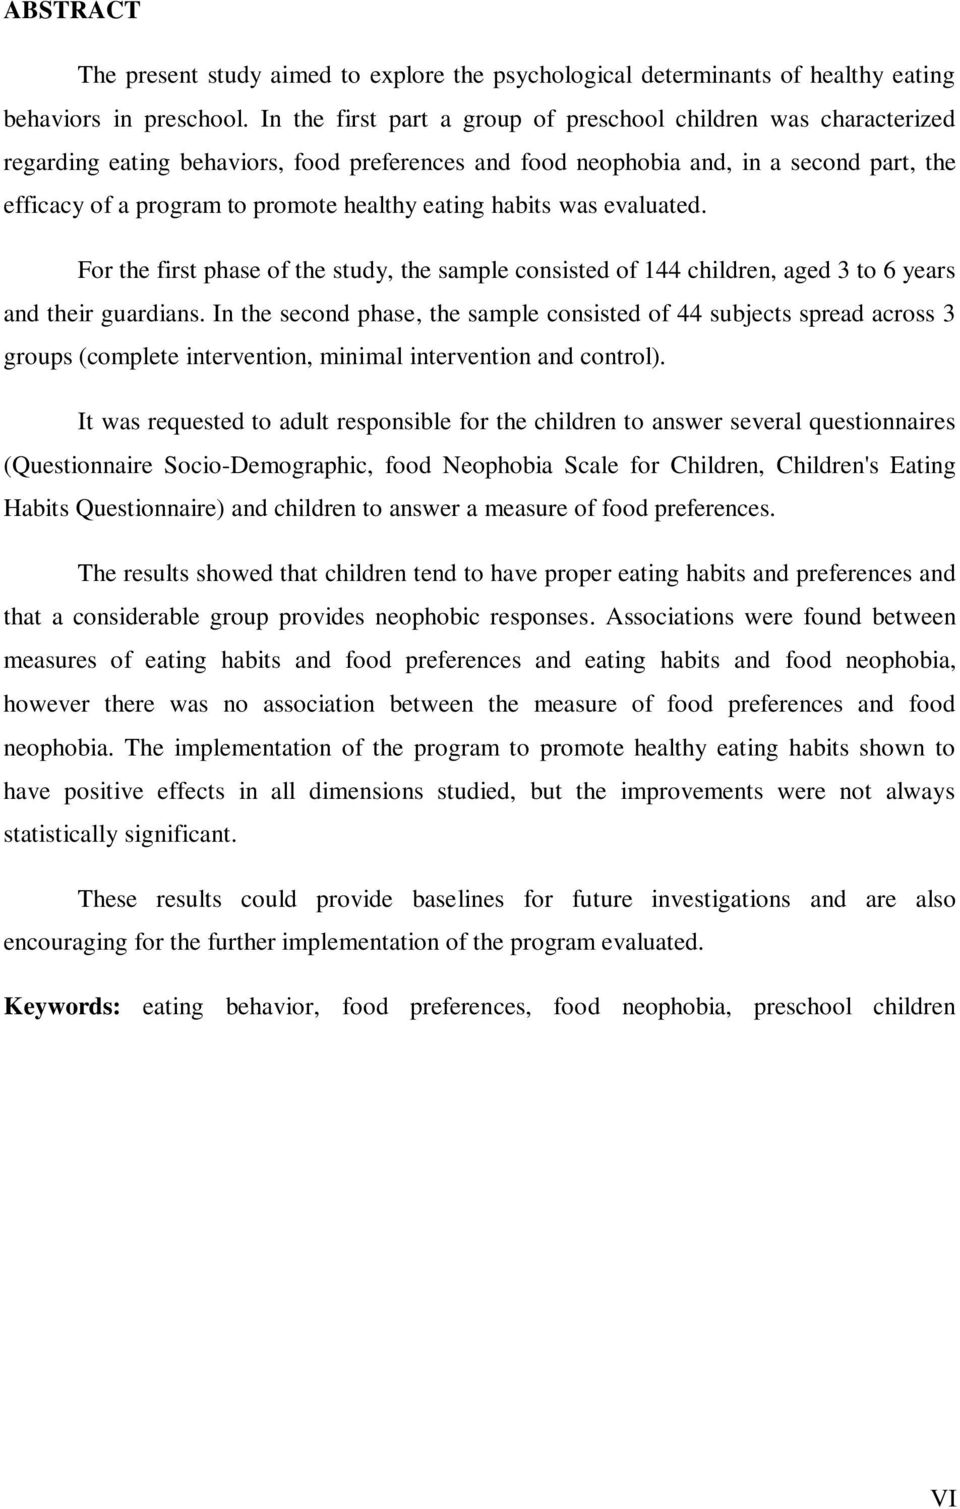 eating habits was evaluated. For the first phase of the study, the sample consisted of 144 children, aged 3 to 6 years and their guardians.